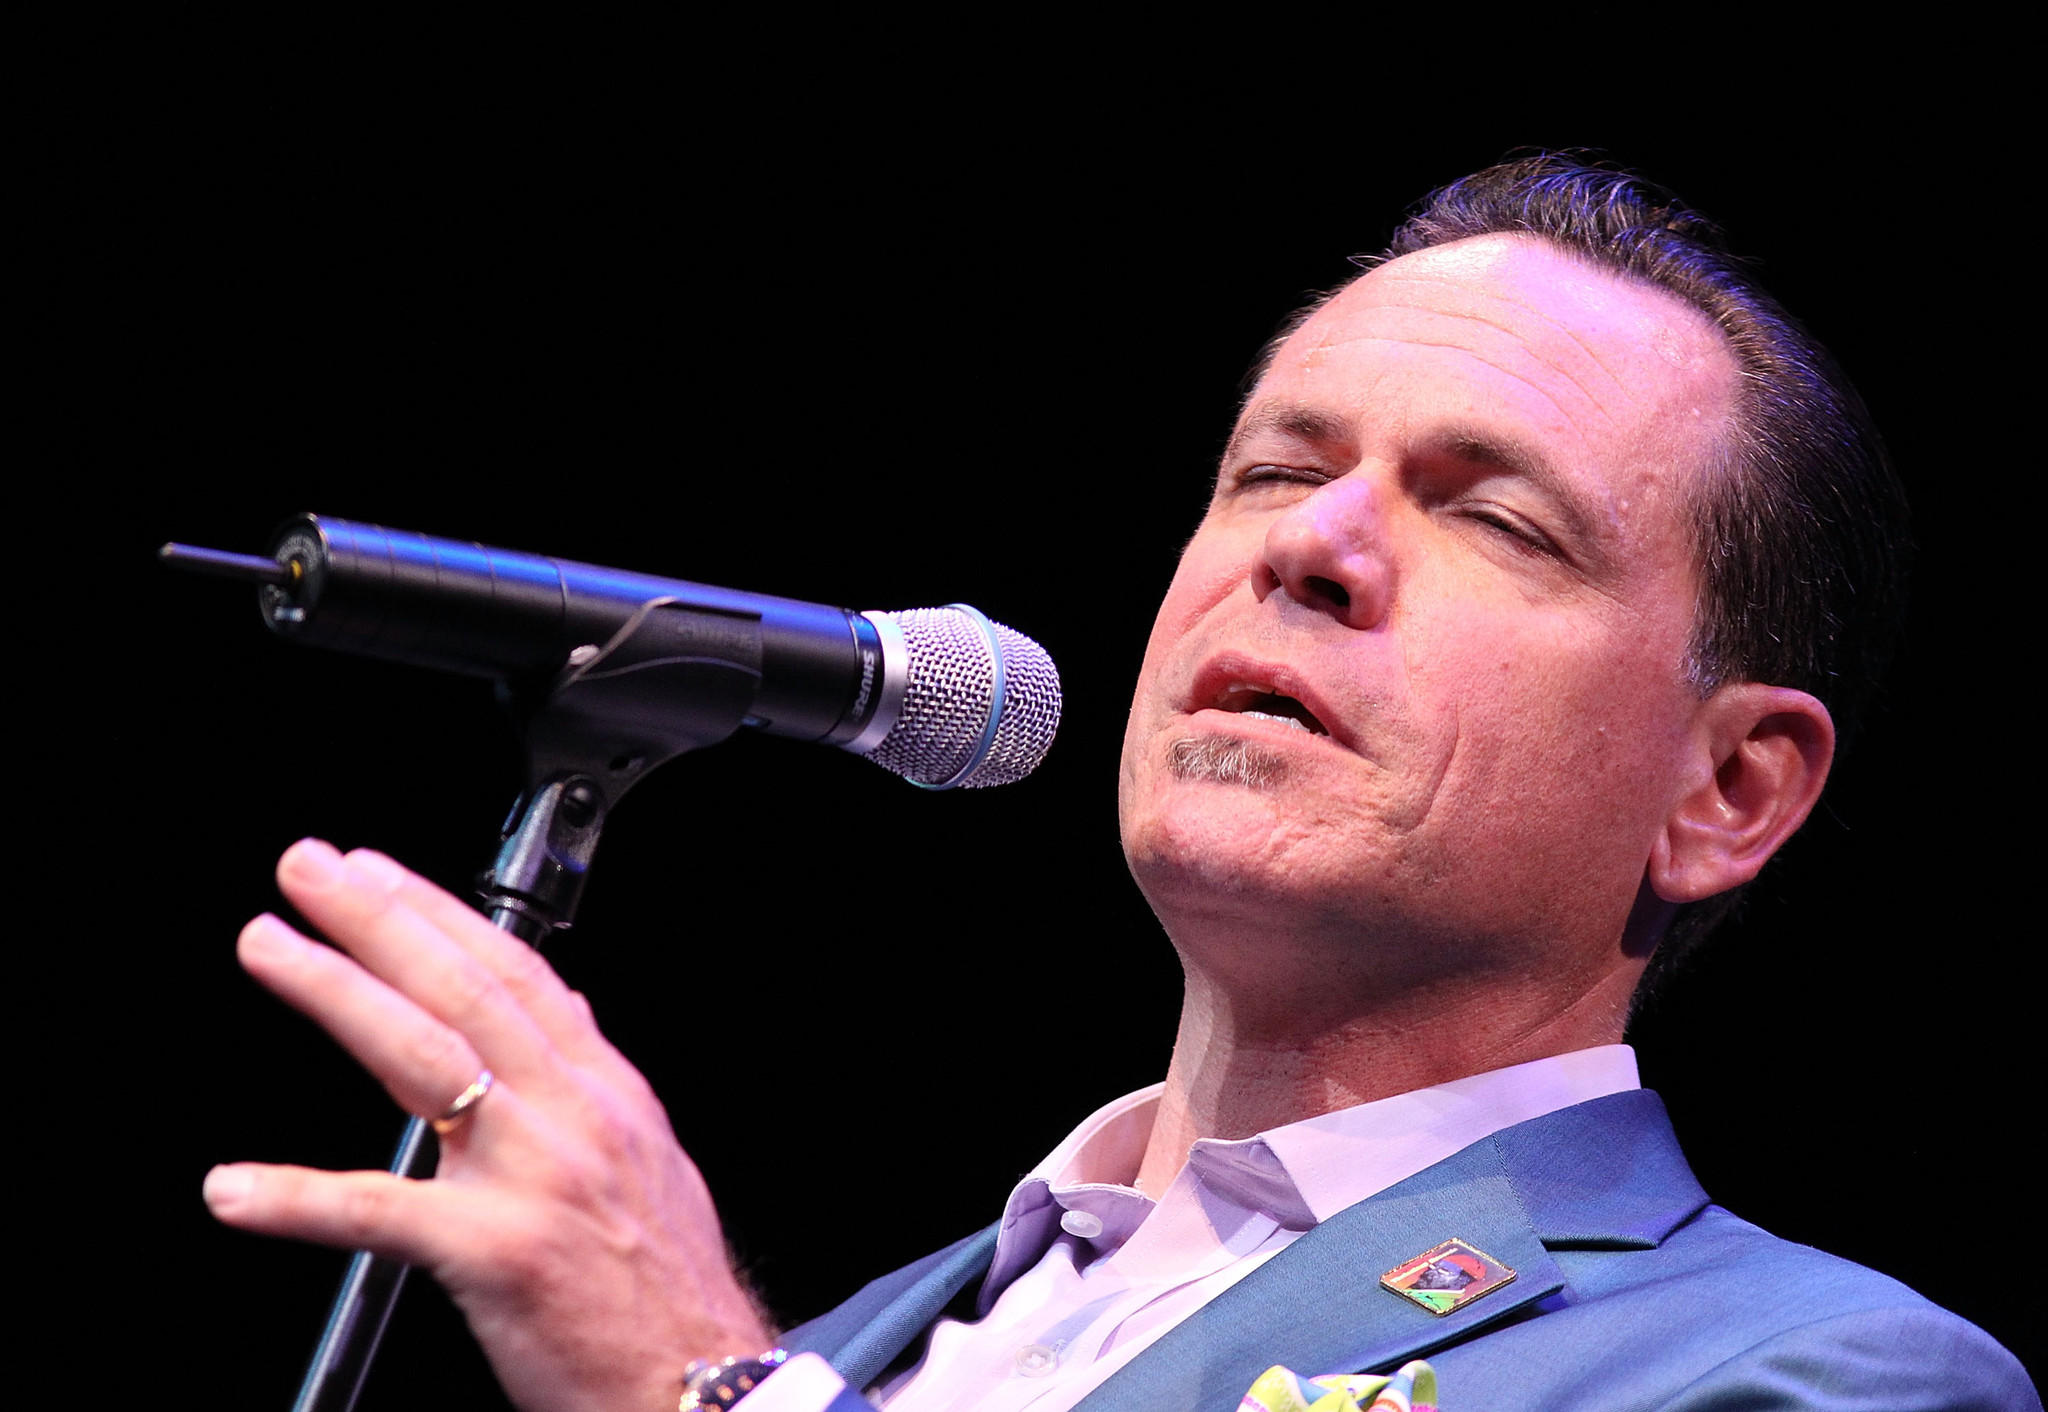 kurt_elling_c_paul_morigi_getty_images.jpg